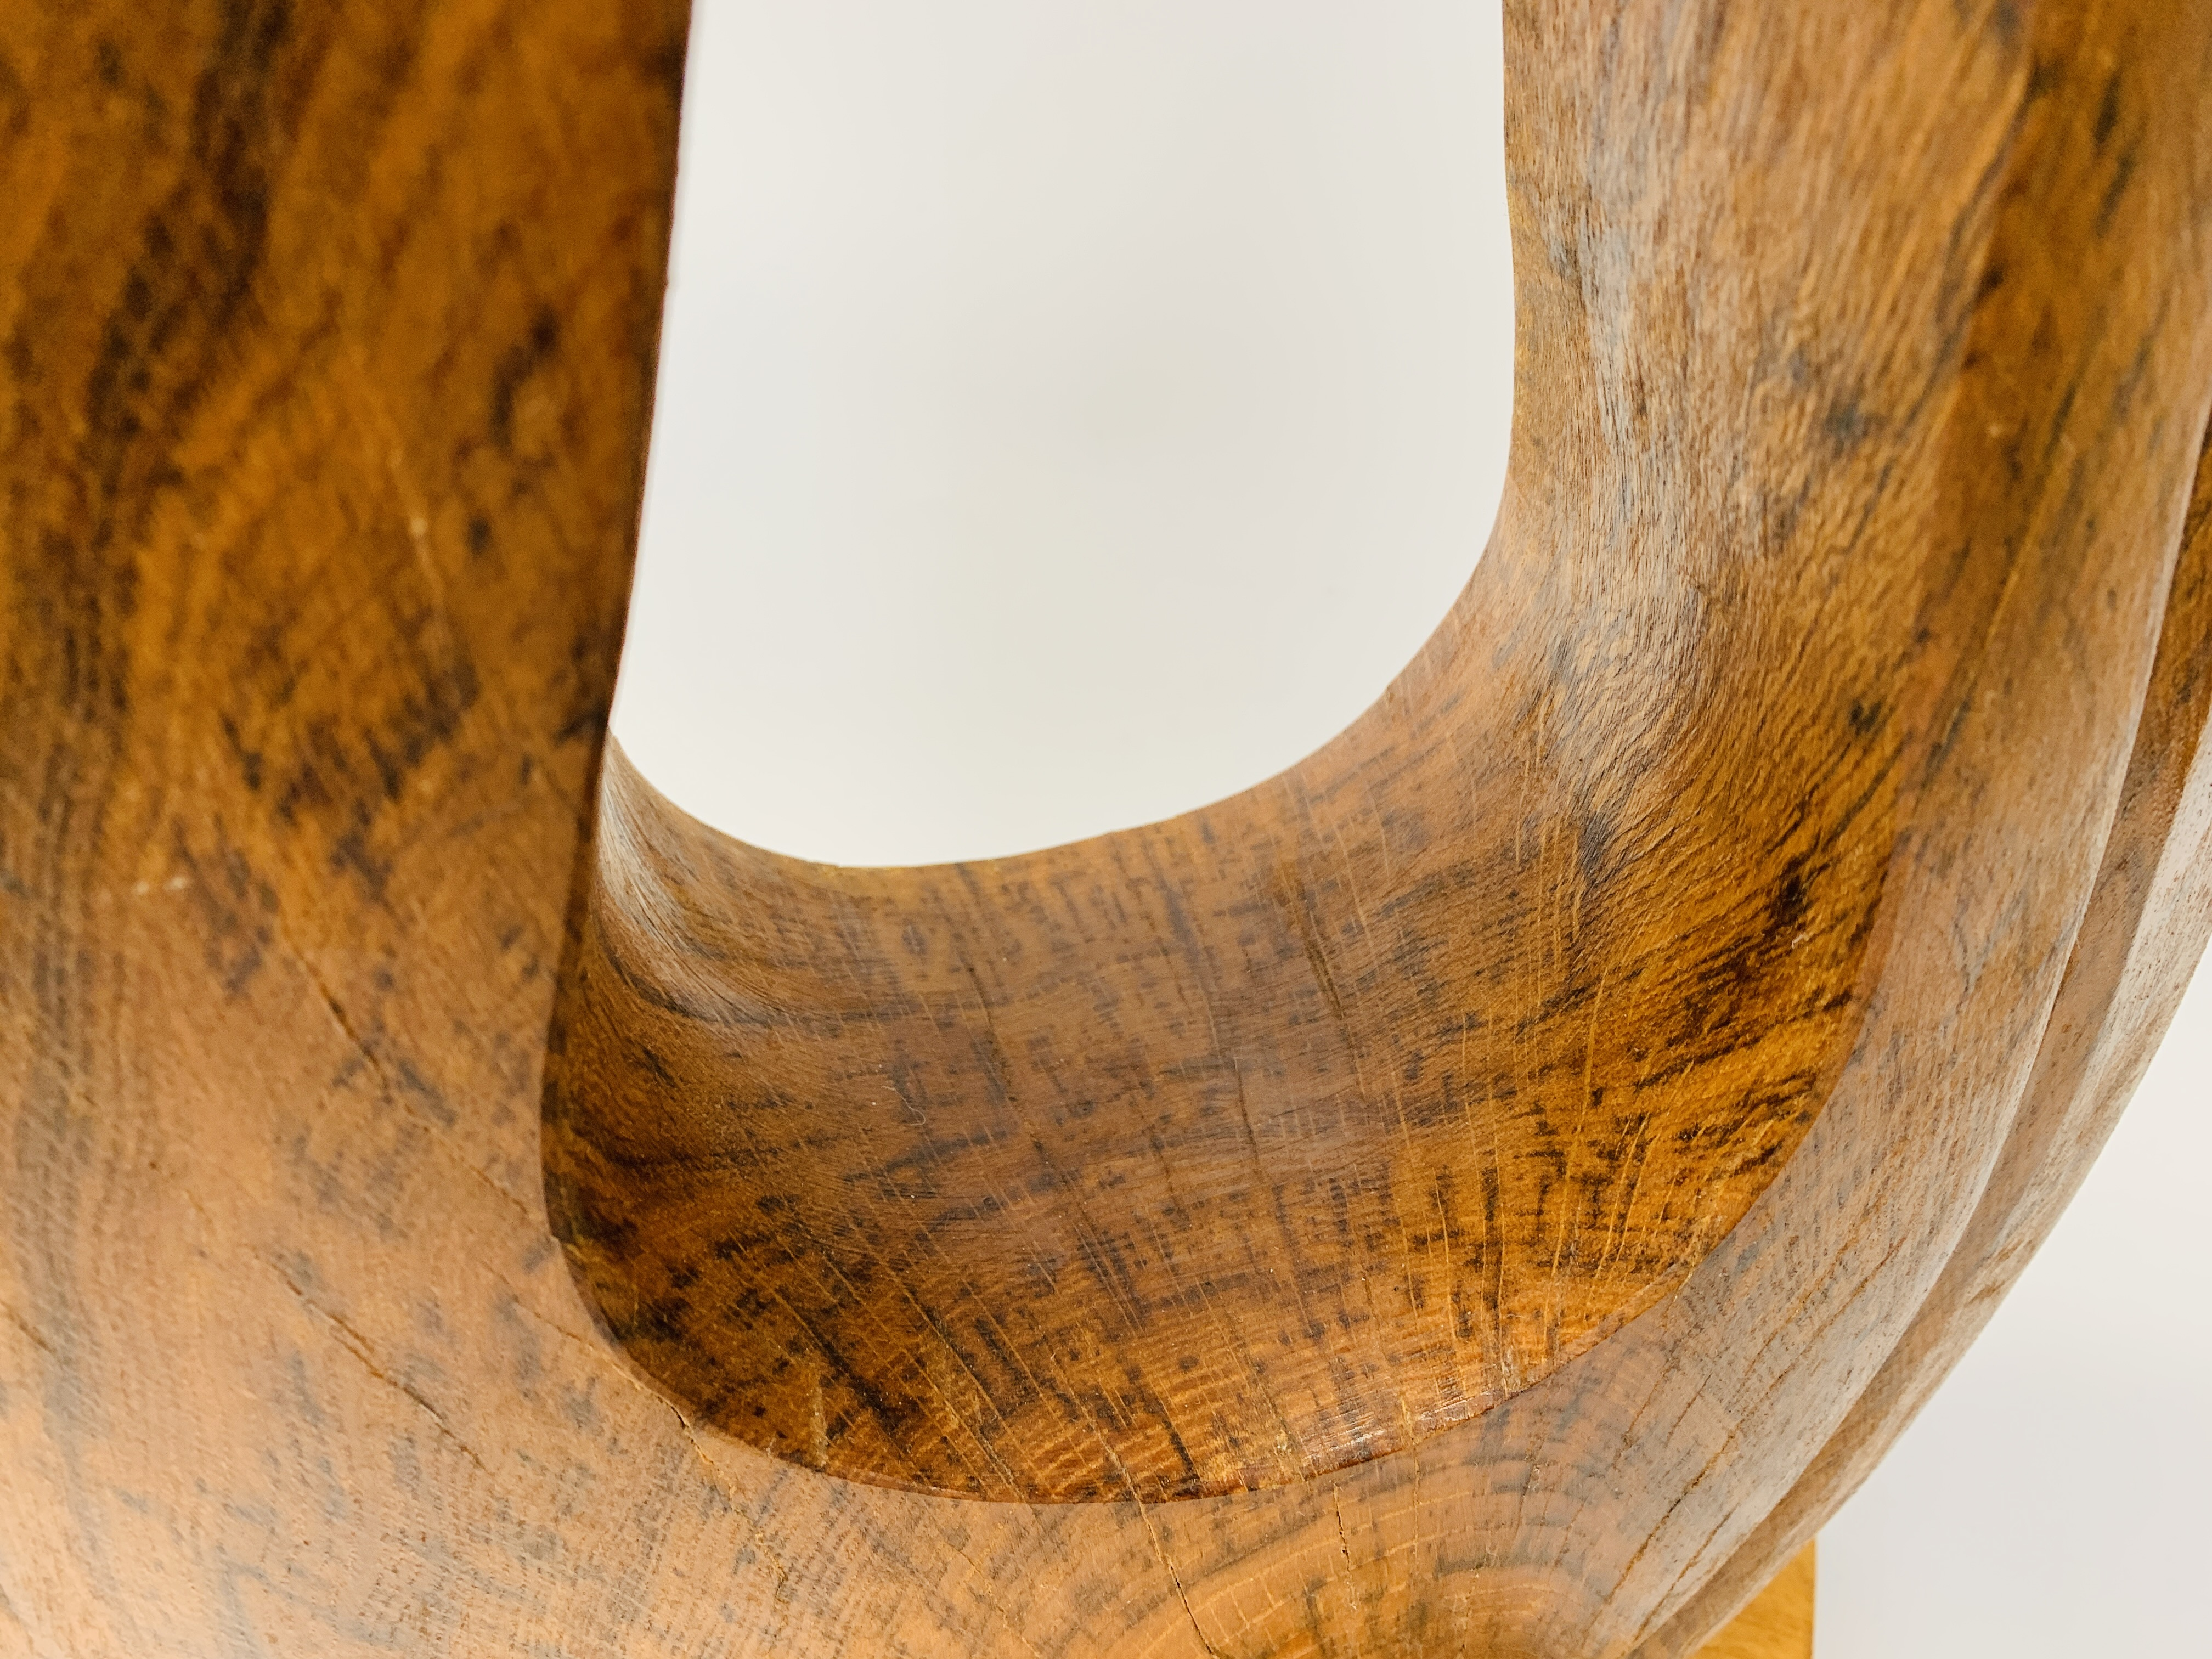 """AN OAK ABSTRACT SCULPTURE OF """"U"""" SHAPED FORM - HEIGHT 83 CM. - Image 7 of 8"""